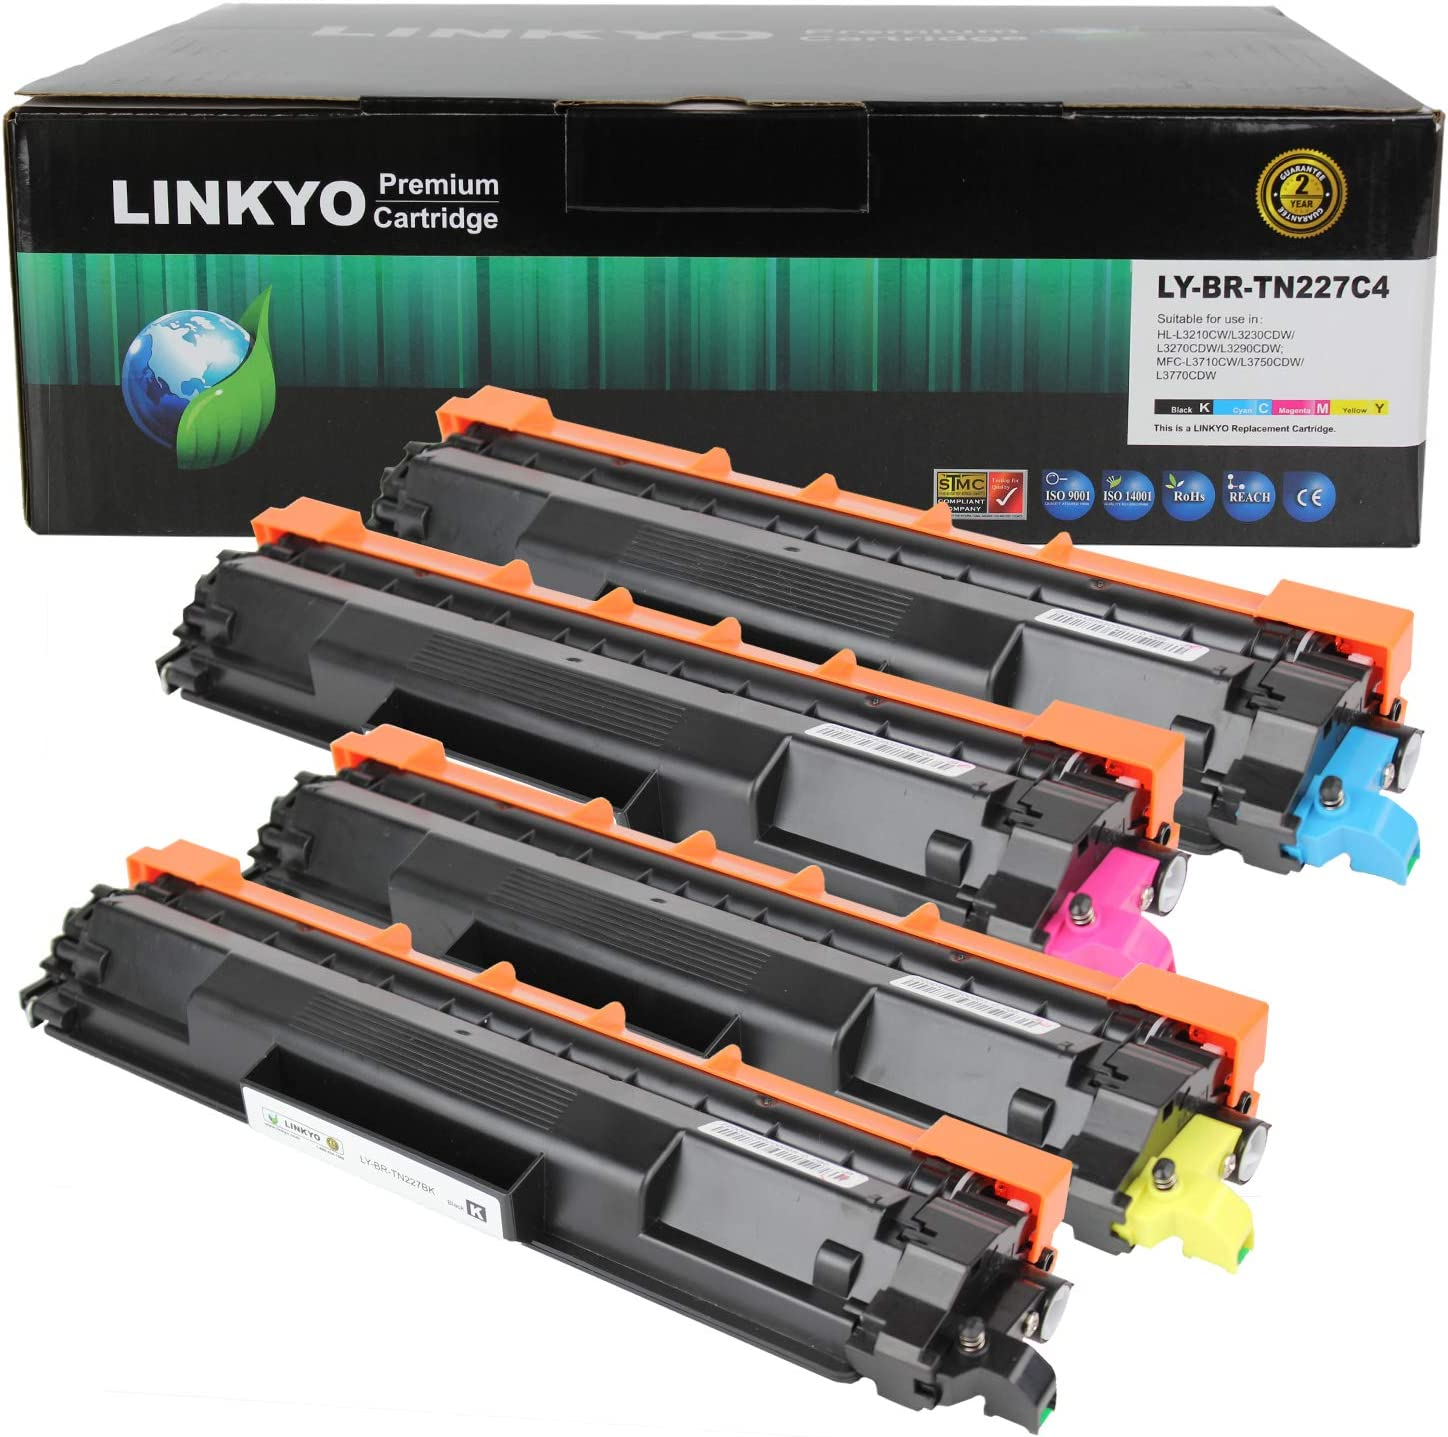 LINKYO Compatible Toner Cartridge Replacement for Brother TN227 High Yield TN223 TN227BK TN227C TN227M TN227Y (Black, Cyan, Magenta, Yellow, 4-Pack)